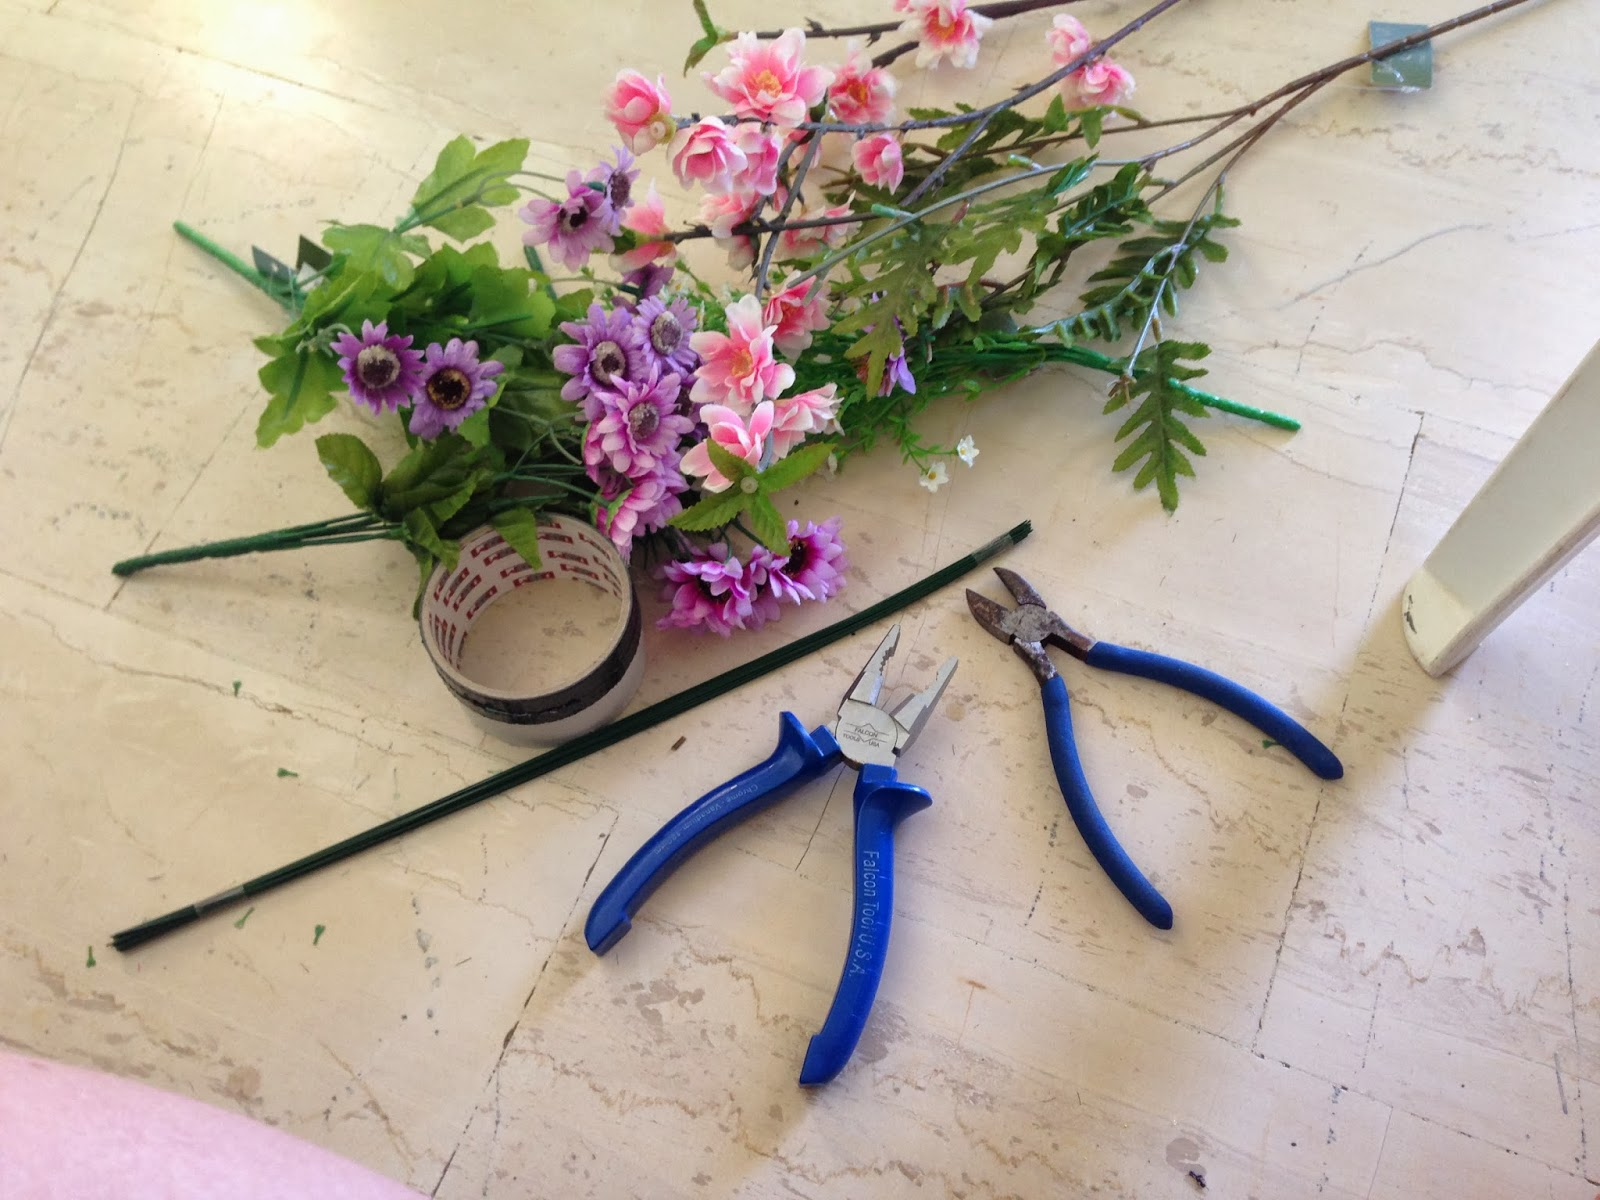 Lashes lipstick and lifestyle diy flower crown steps izmirmasajfo